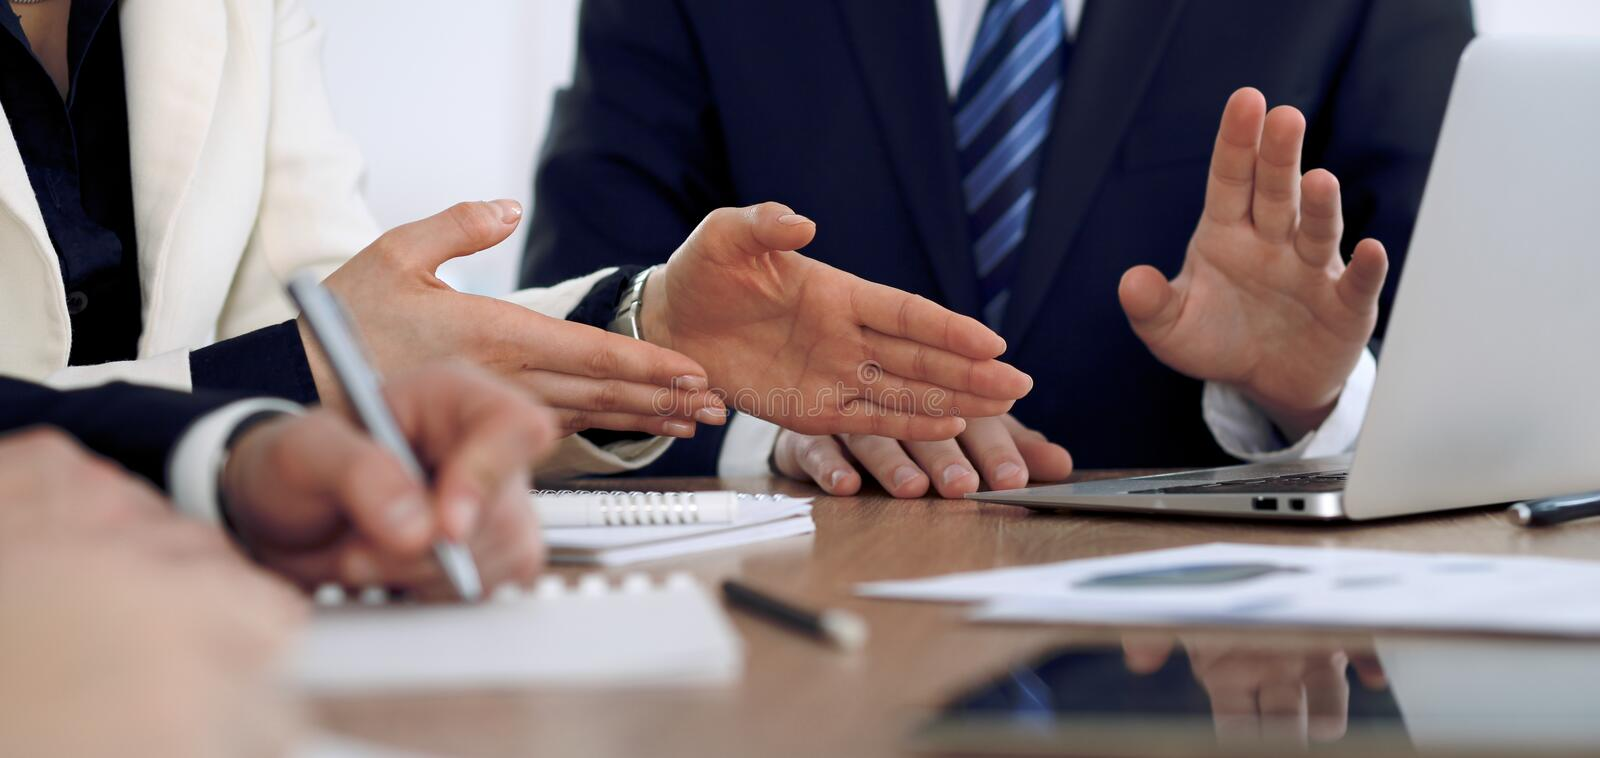 Group of business people or lawyers at meeting, hands close-up royalty free stock photography